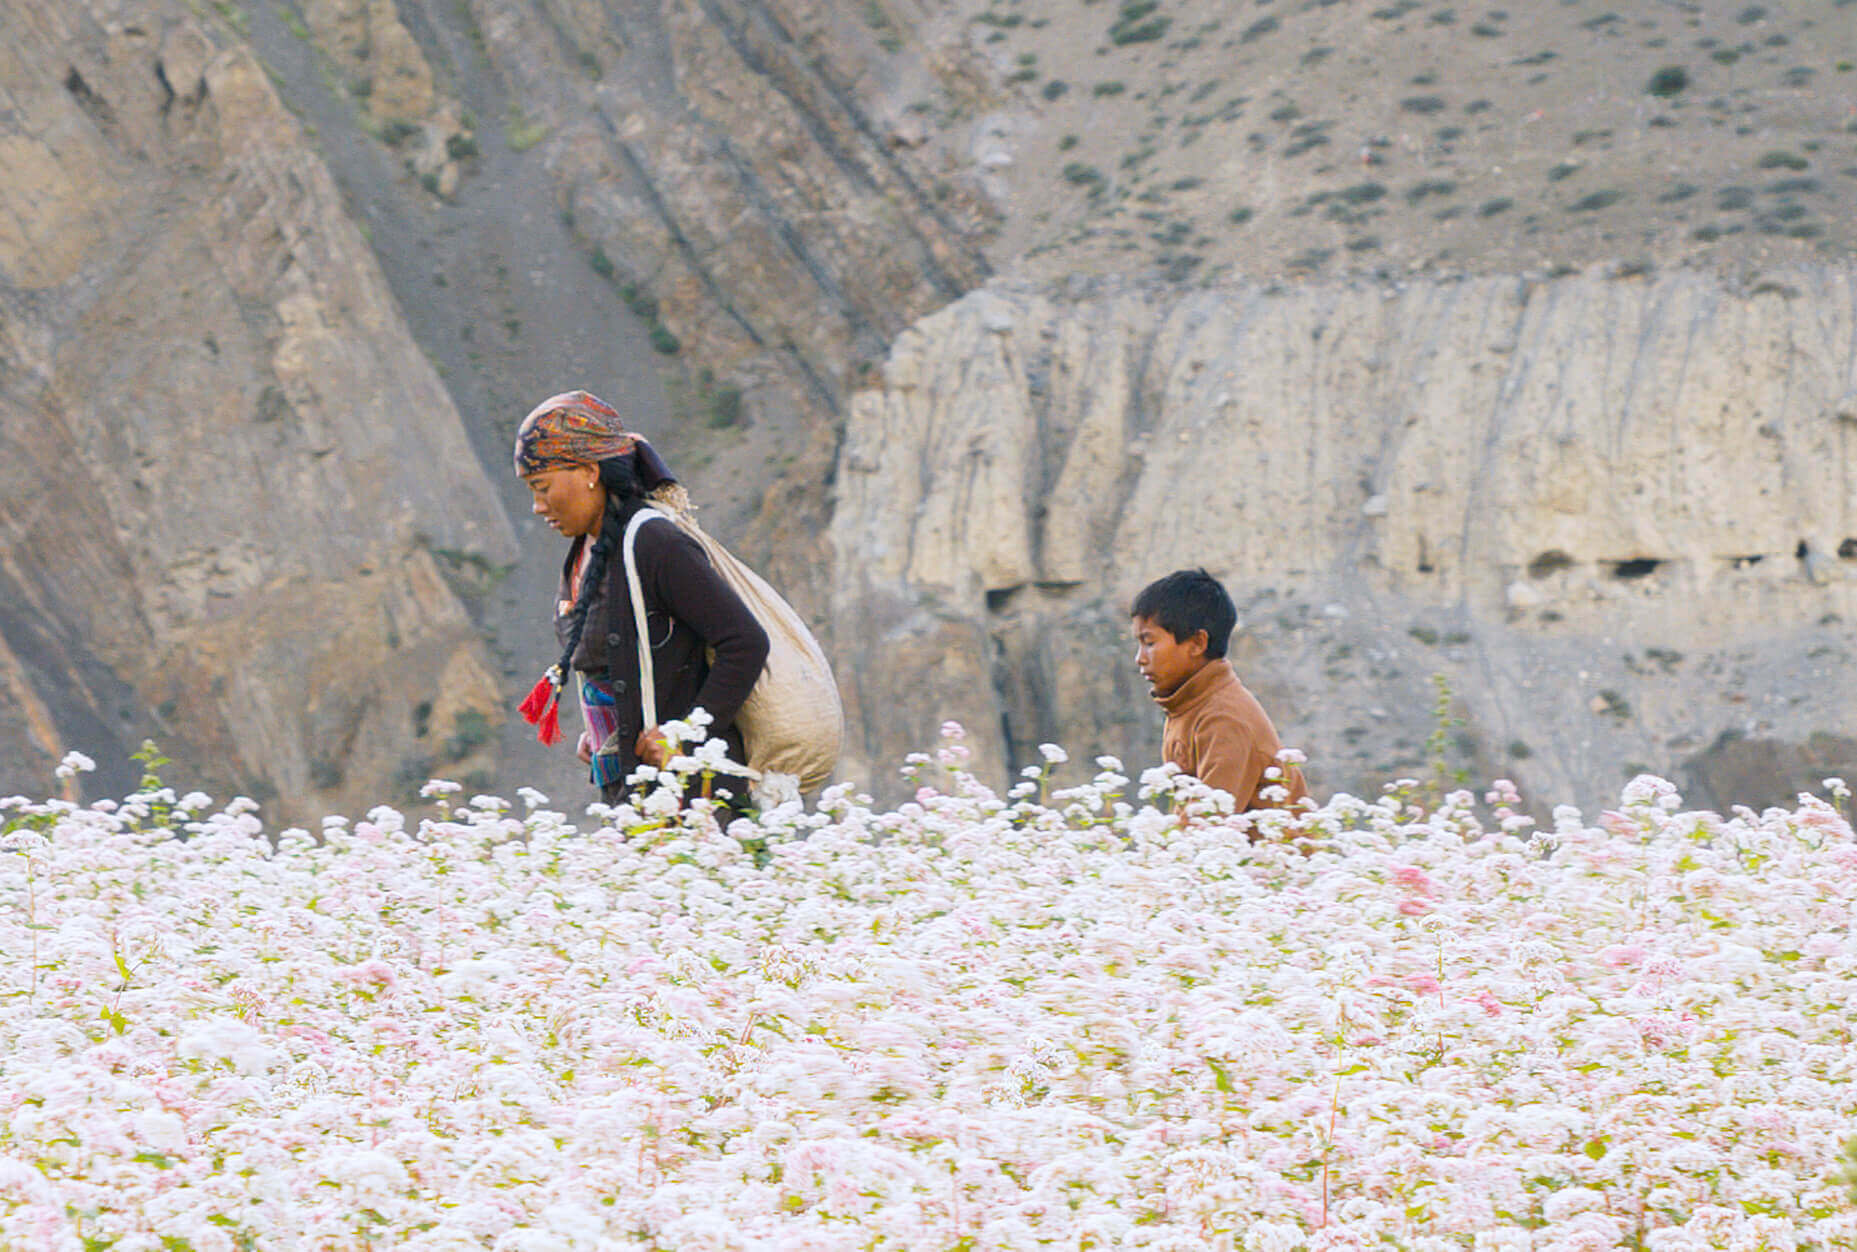 Ama Khando: a different road trip film from Nepal